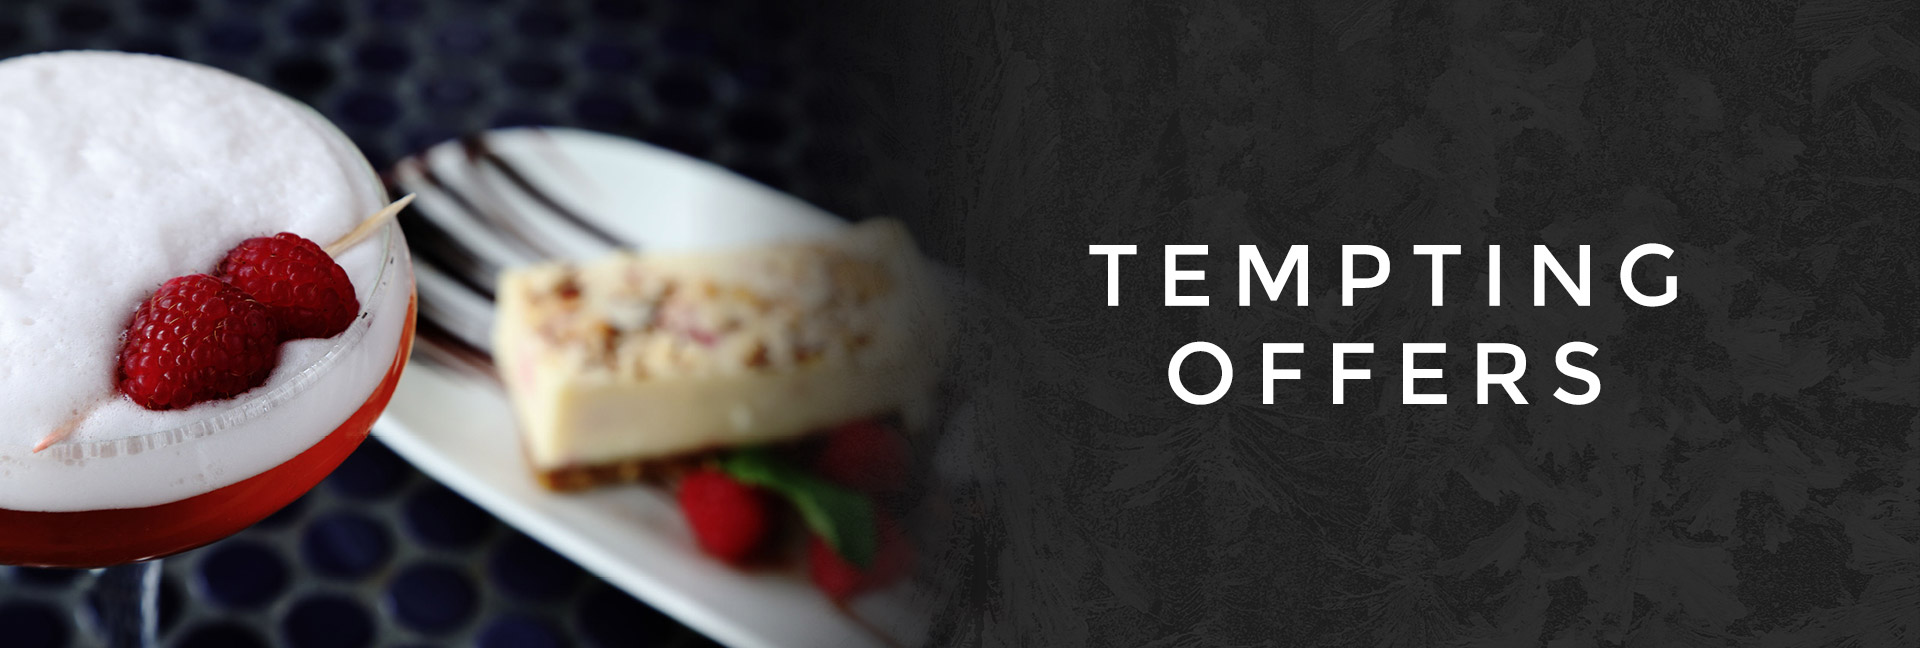 Temping offers at All Bar One Ludgate Hill